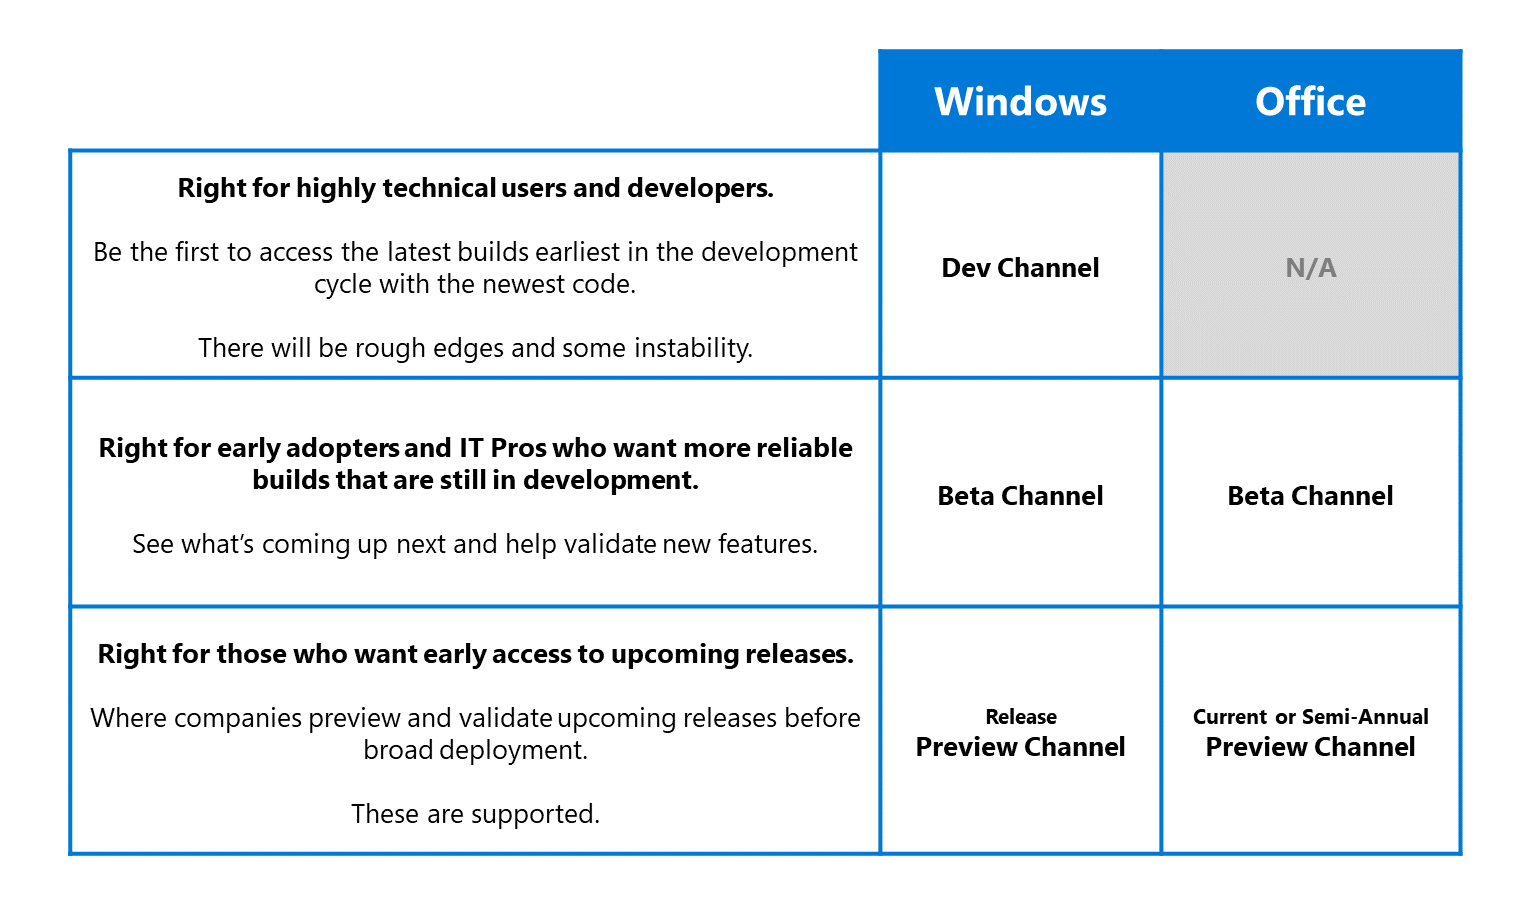 Table showing similarities between channels for Windows and Office Insider Programs.